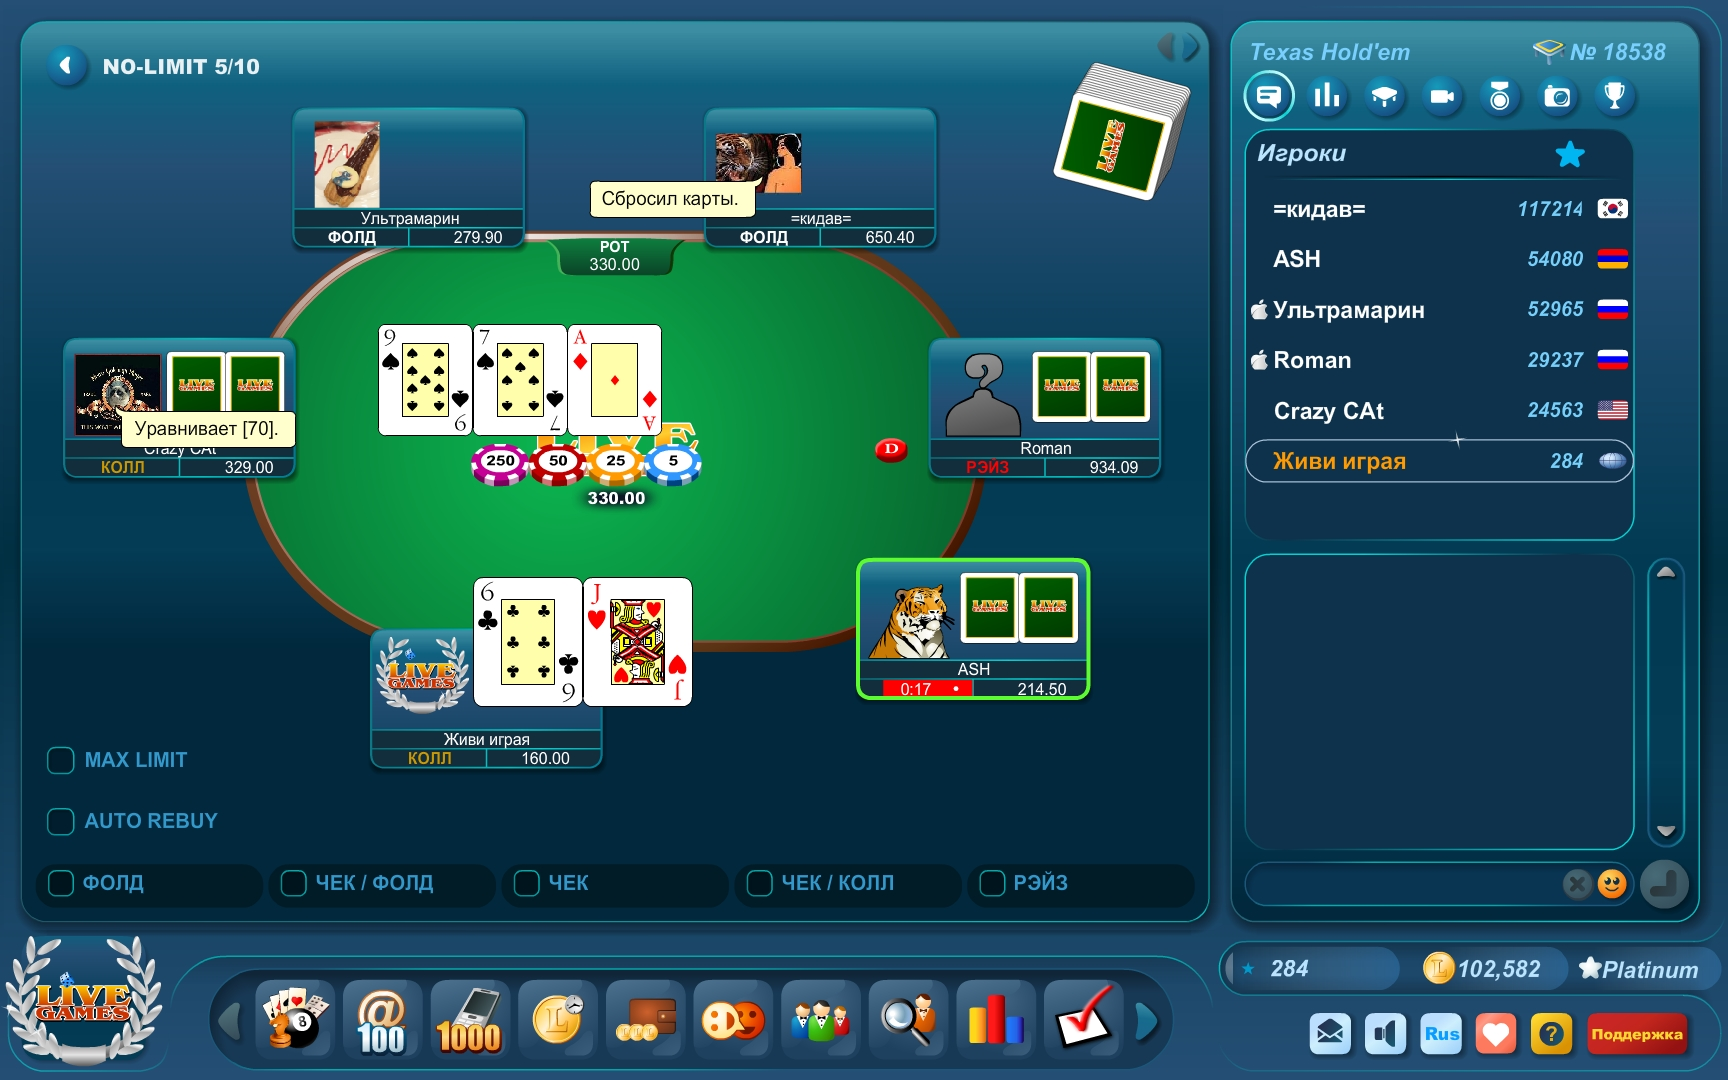 Снг poker stars big game